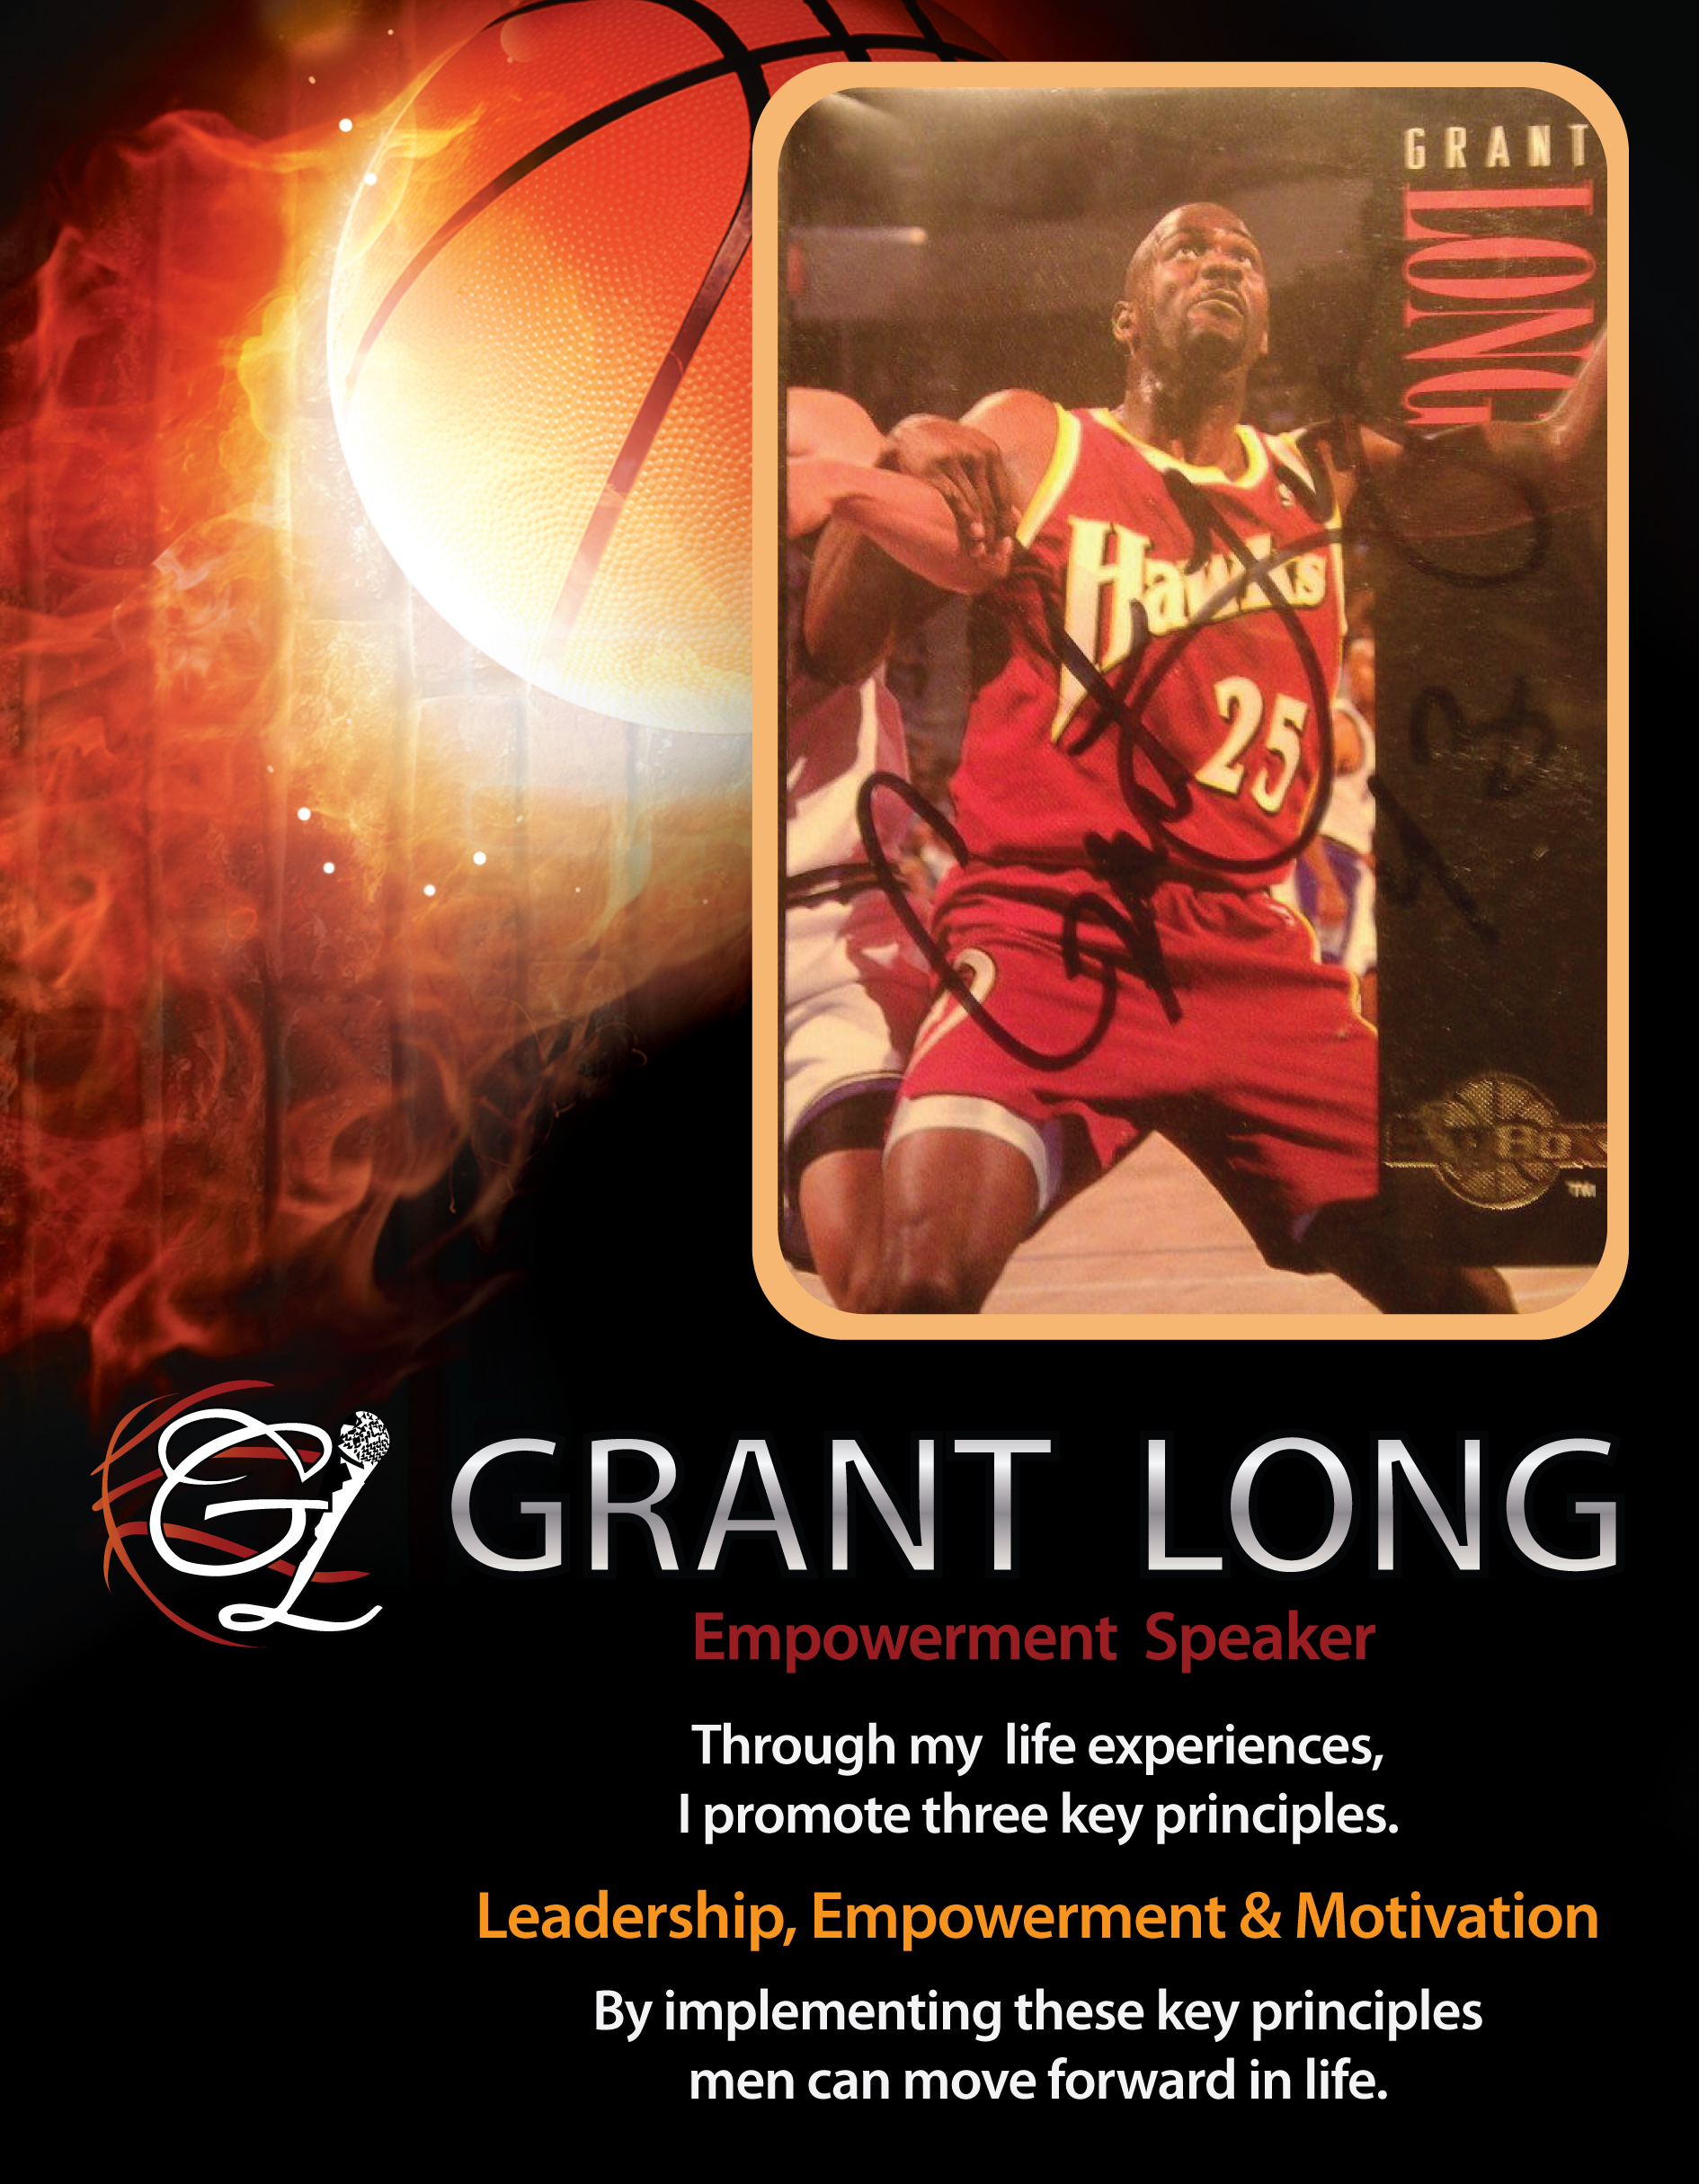 Grant Long Media Kits/Speaker Sheets